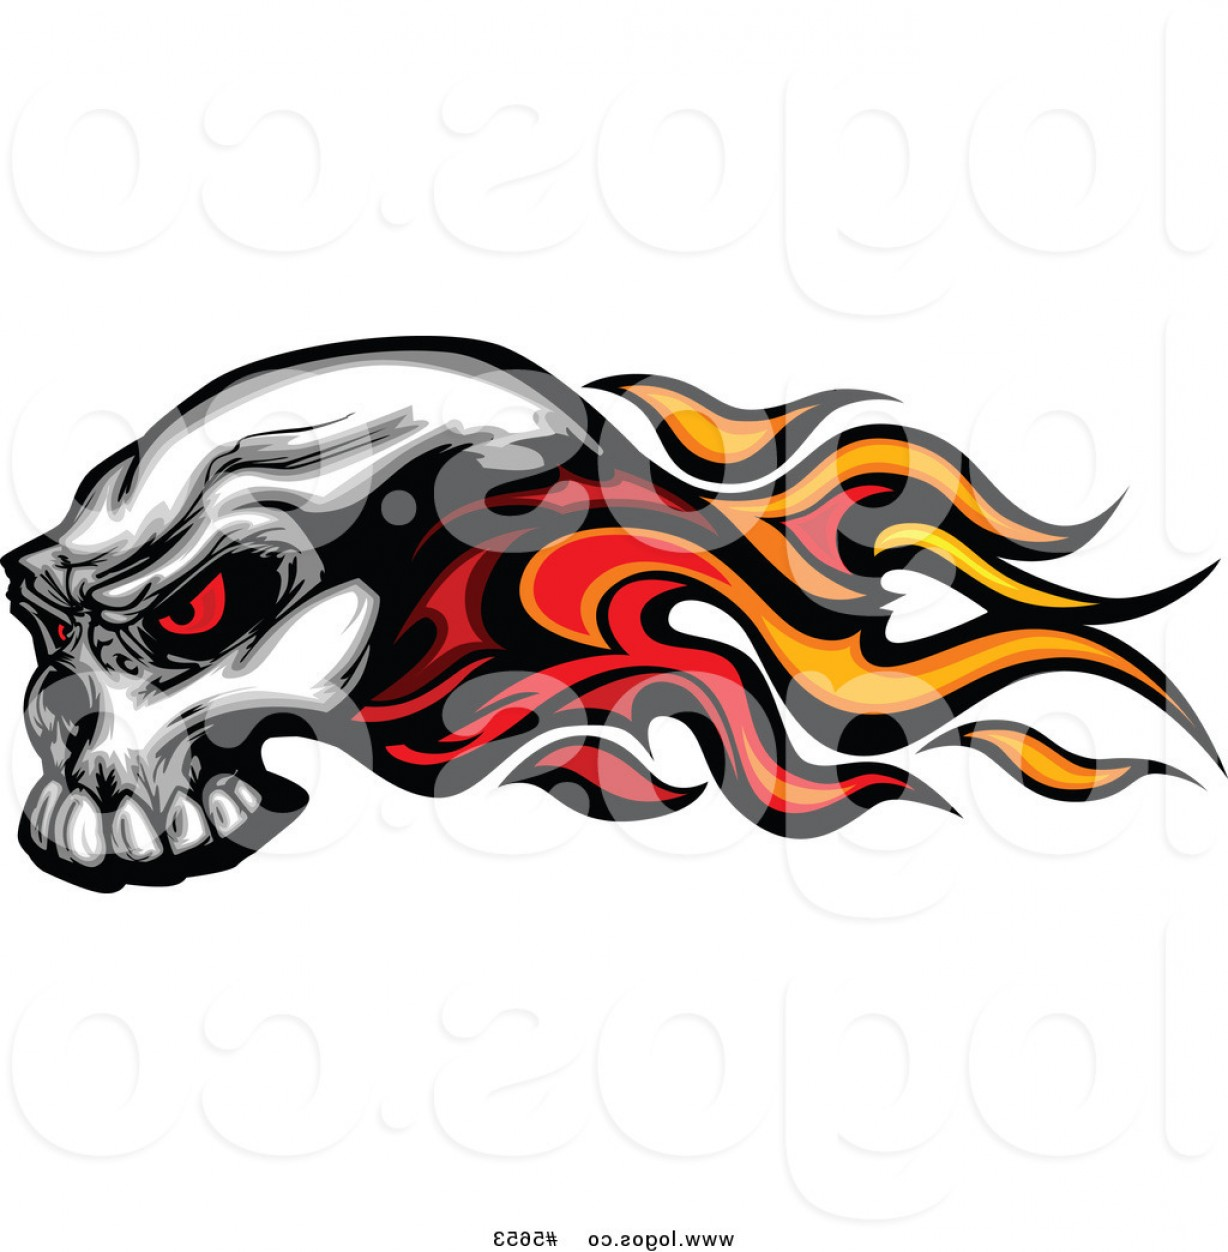 Eye Tribal Skull Vector: Royalty Free Vector Of A Logo Of A Flaming Red Eyed Skull By Chromaco